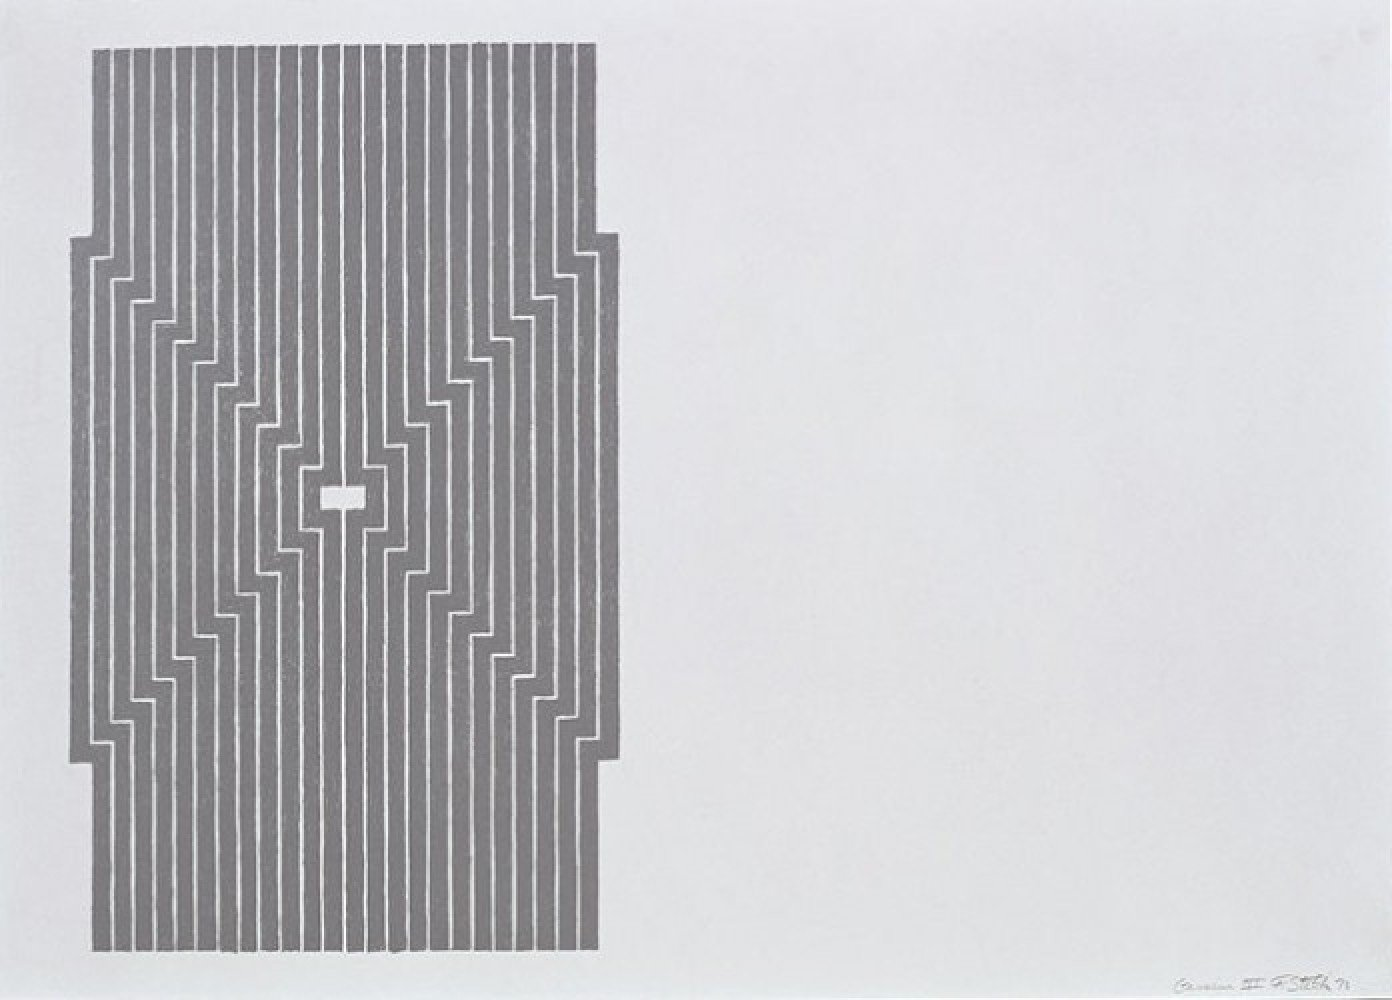 Six Mile Bottom, From the Aluminum Series 1970